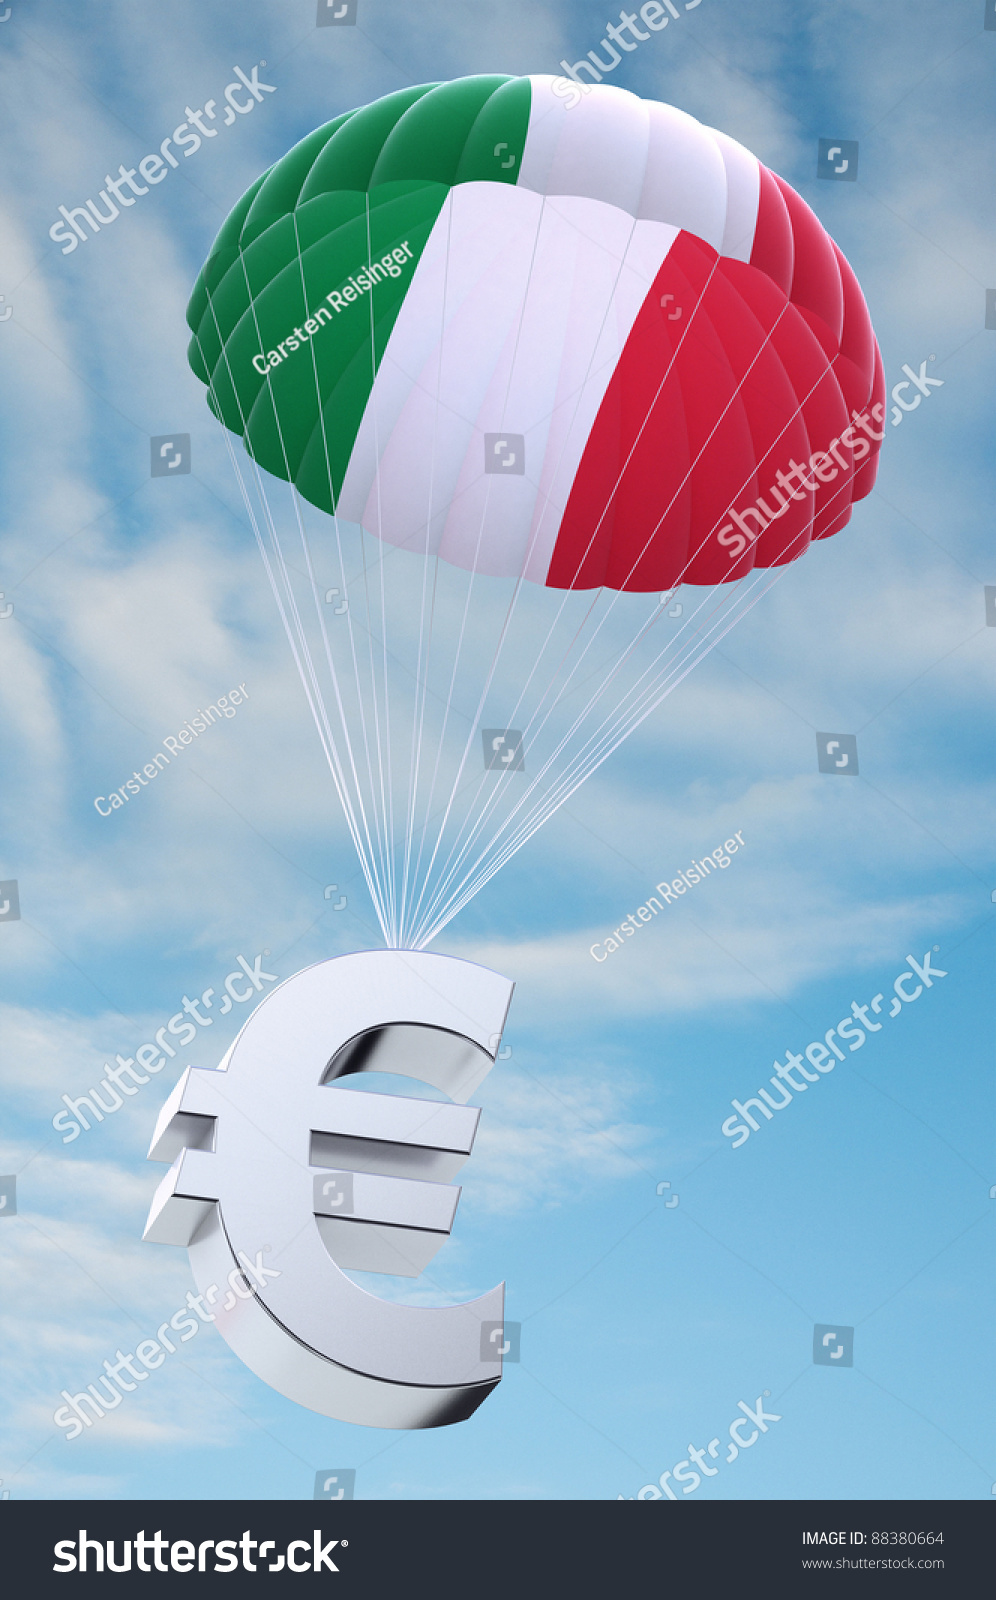 Parachute italian flag on holding euro stock illustration 88380664 parachute with the italian flag on it holding a euro currency symbol concept for security buycottarizona Choice Image